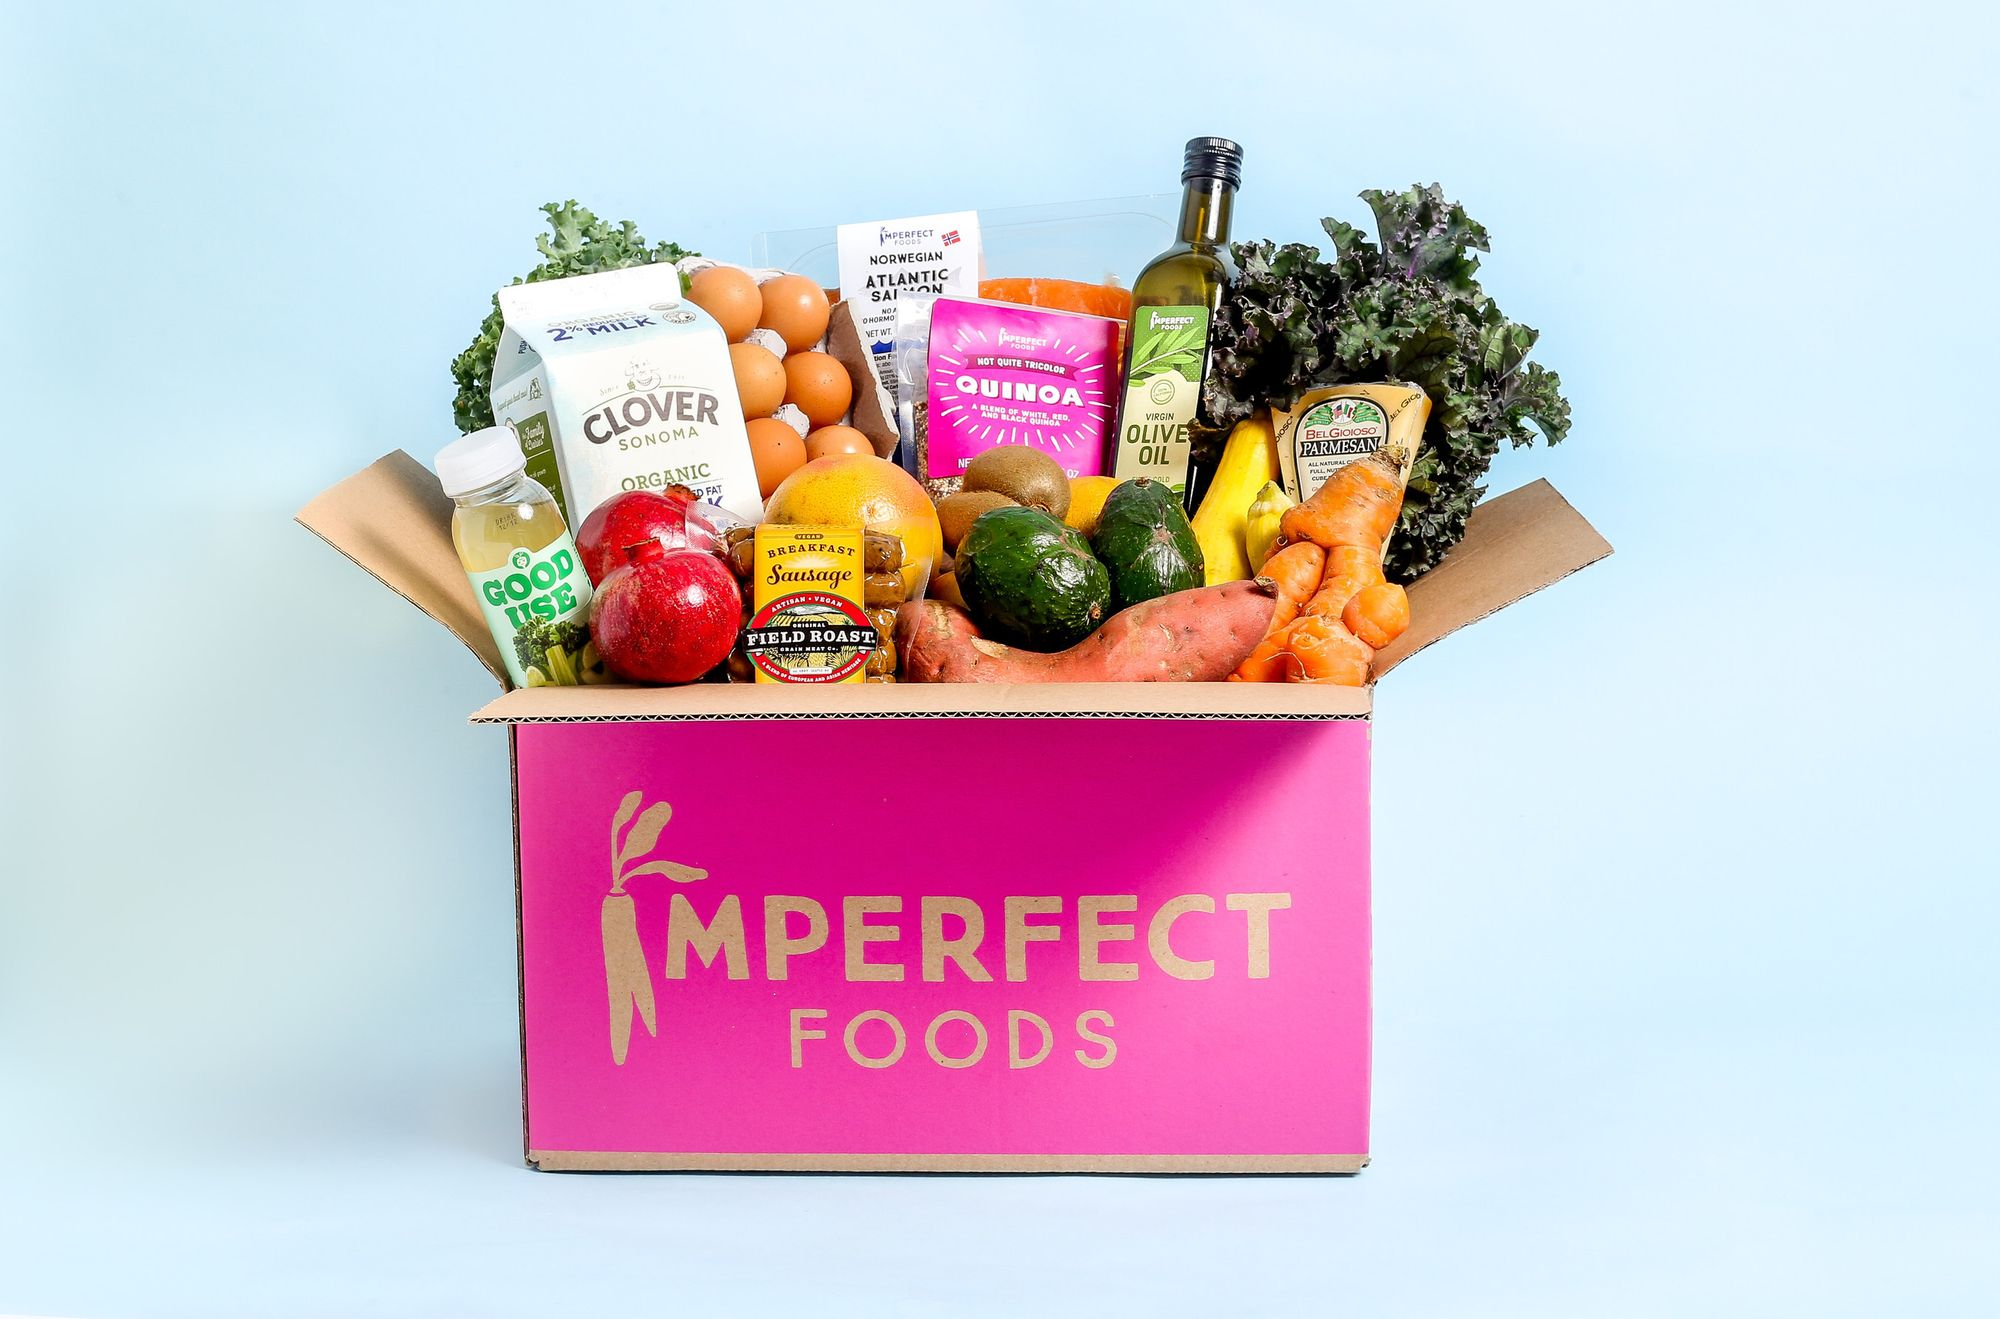 Imperfect Foods Secures $72M in Series C Round